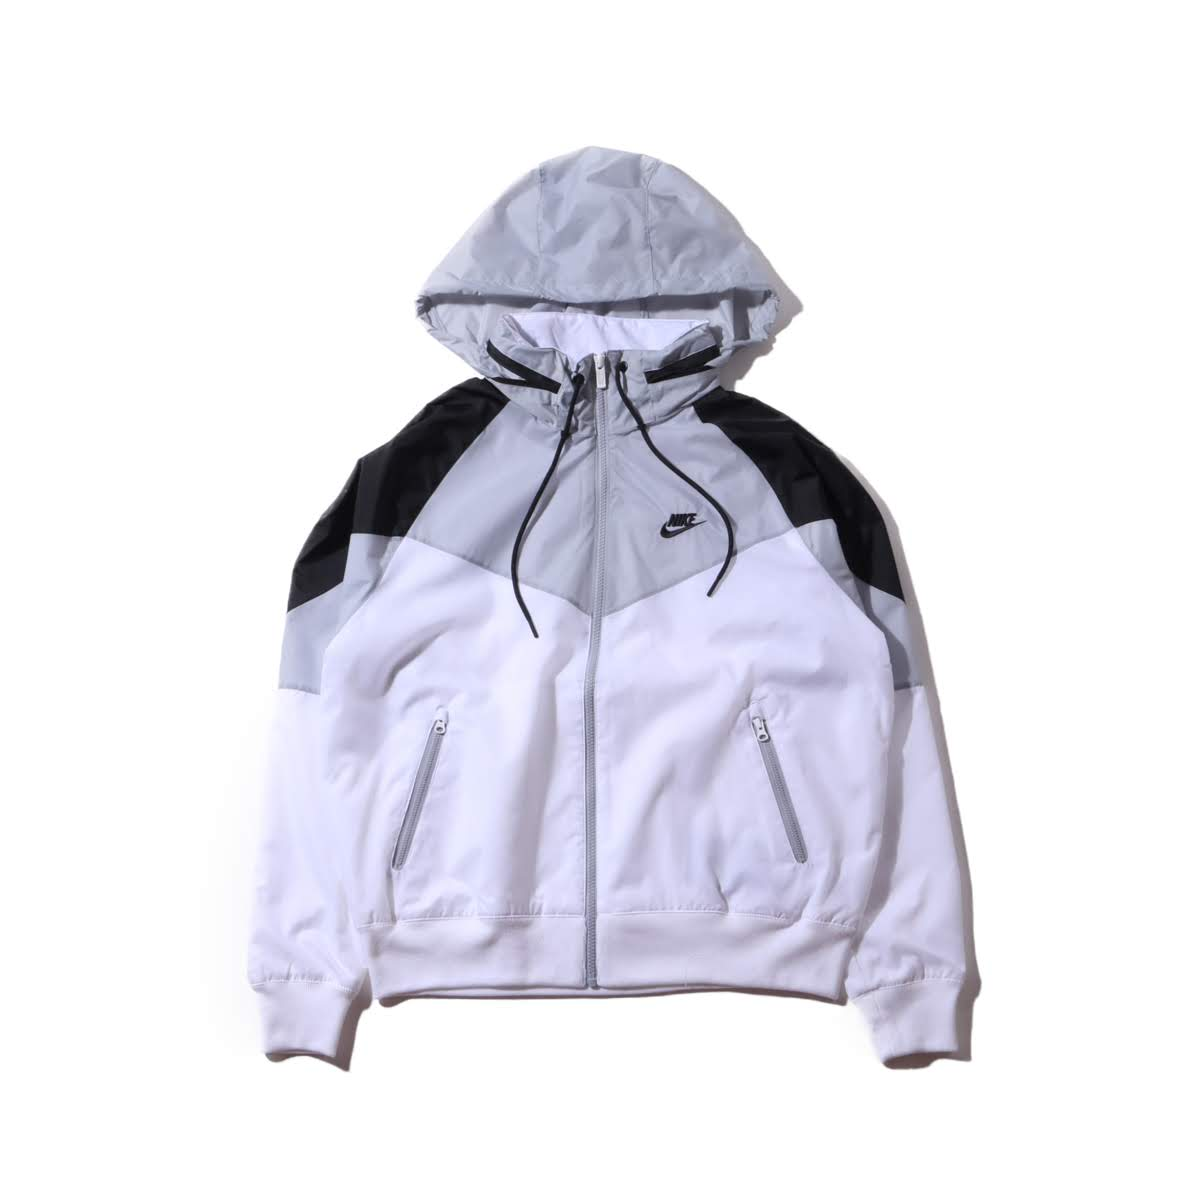 NIKE AS M NSW HE WR JKT HD +(WHITE/WOLF GREY/BLACK/BLACK)(ナイキ WR HD ジャケット +)【メンズ】【ジャケット】【19SP-I】